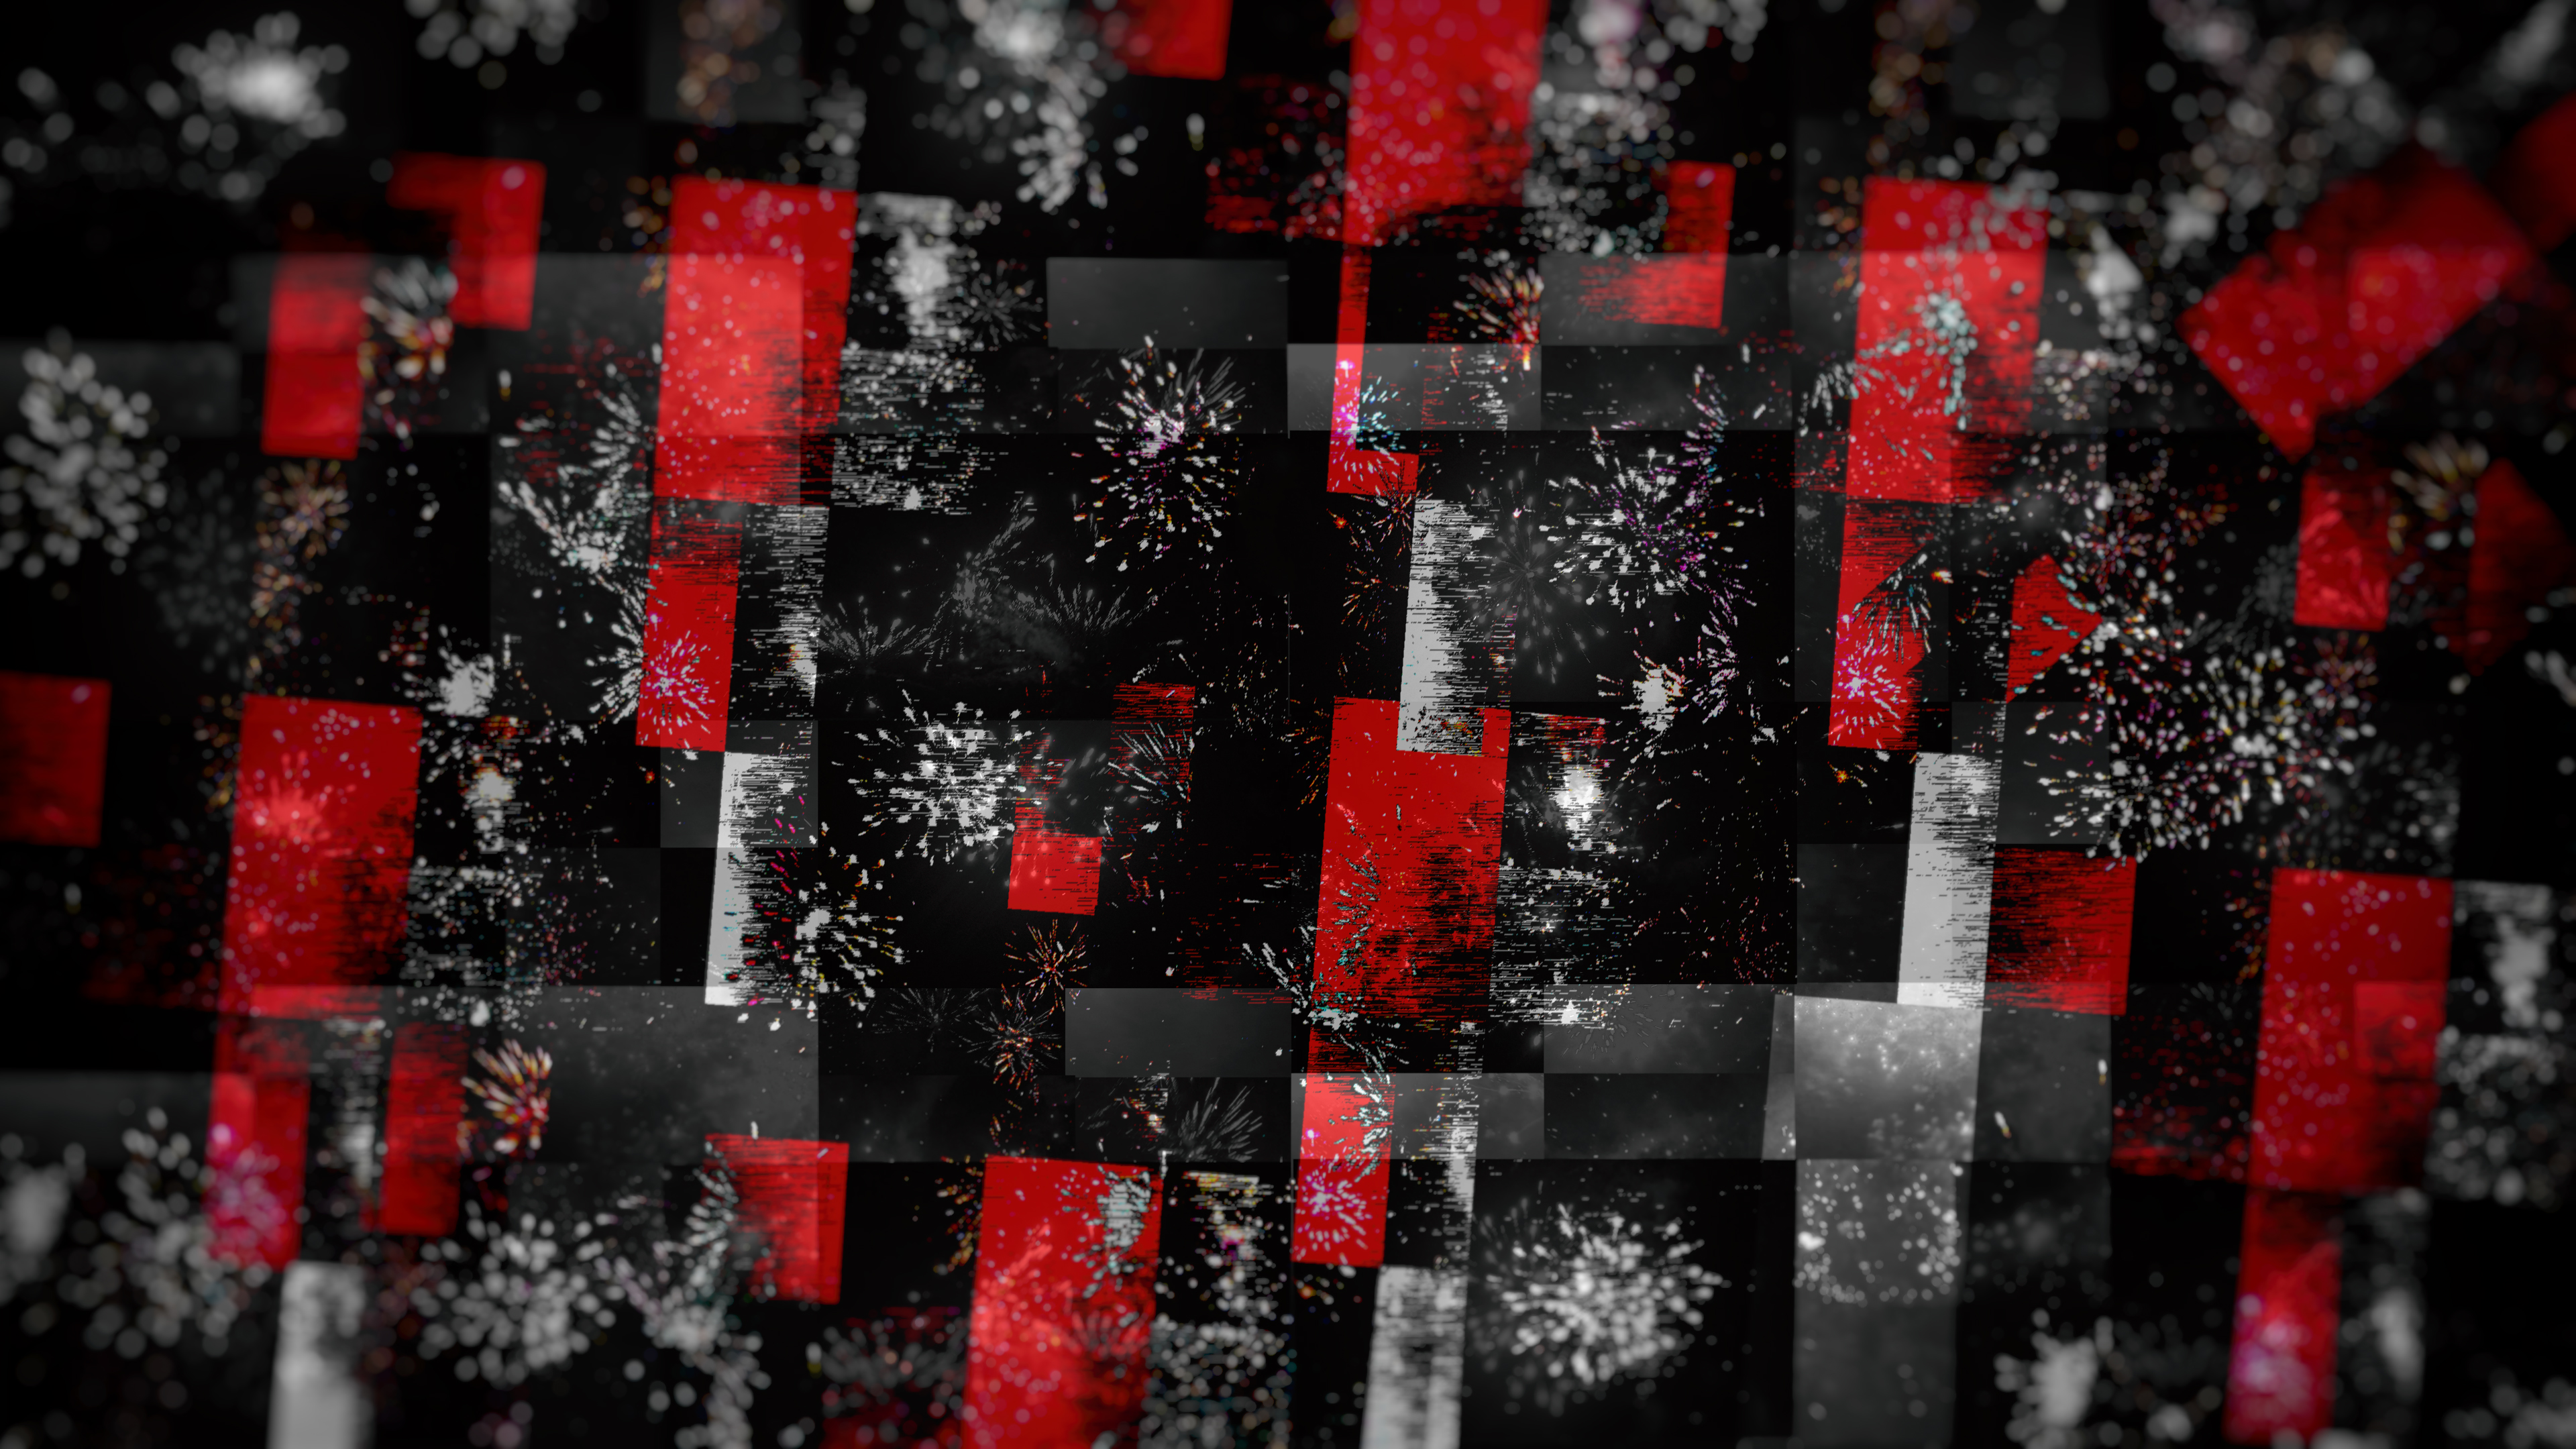 red abstract graphics colors 4k 1539371033 - Red Abstract Graphics Colors 4k - red wallpapers, hd-wallpapers, graphics wallpapers, colors wallpapers, abstract wallpapers, 4k-wallpapers